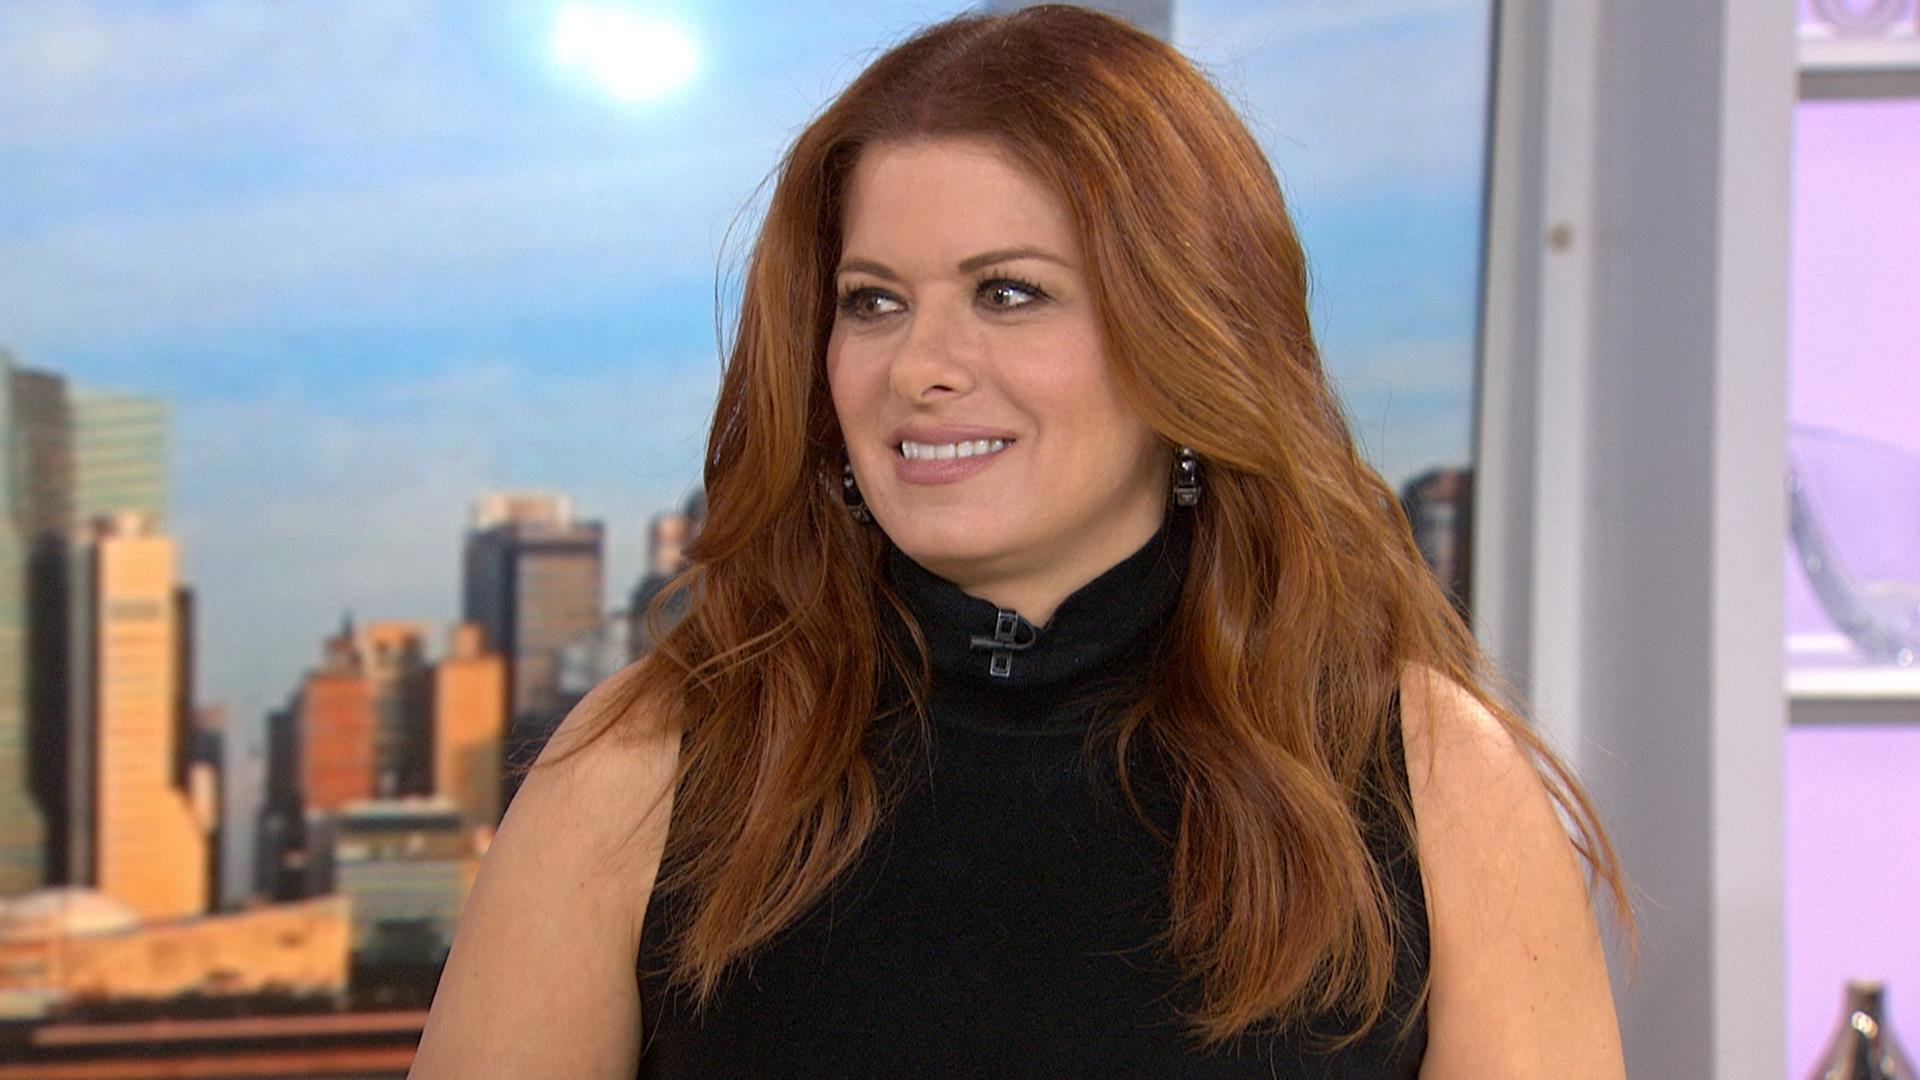 Debra Messing nude (85 photos), Sexy, Cleavage, Boobs, braless 2019